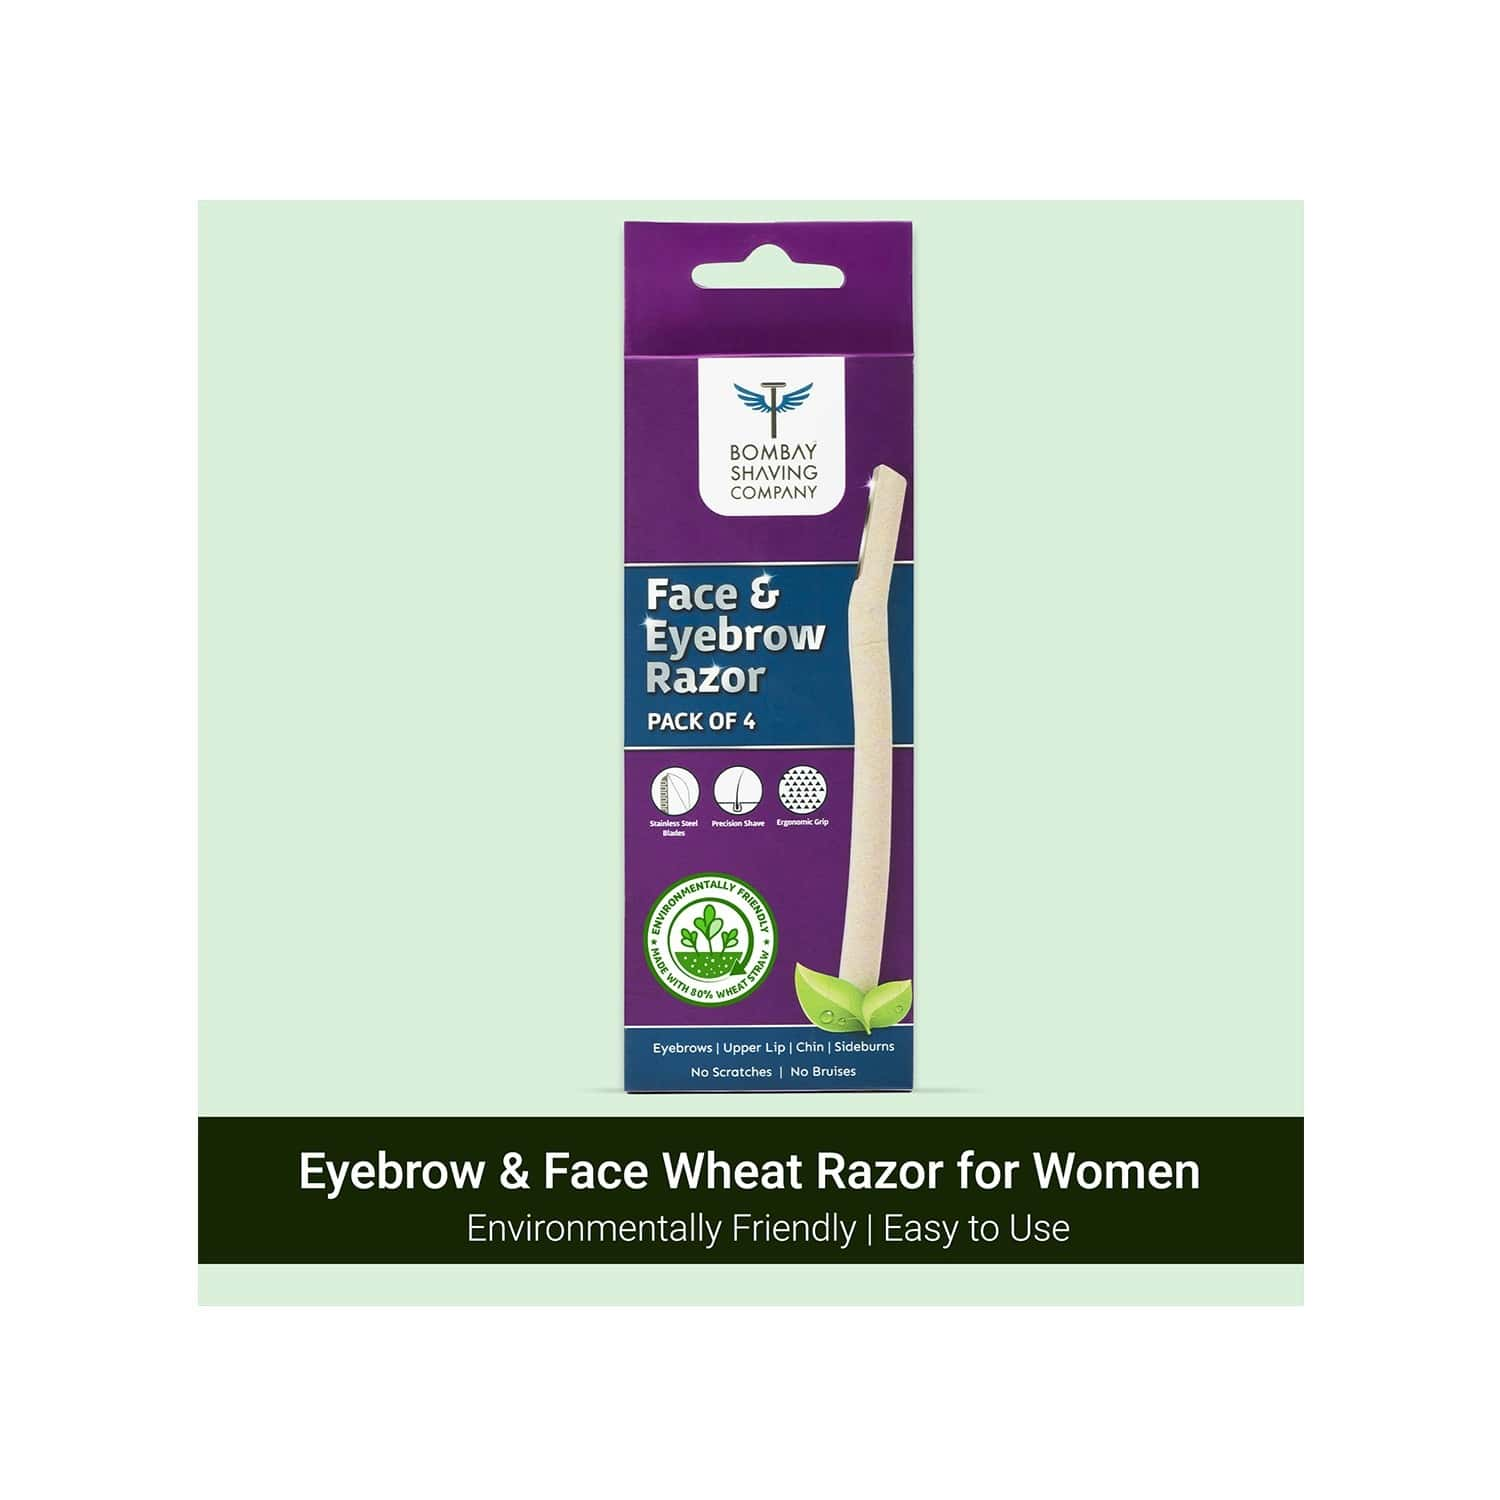 Bombay Shaving Company Face & Eyebrow Razor (pack Of 4) | Face Razor For Women For Easy Facial Hair Removal At Home